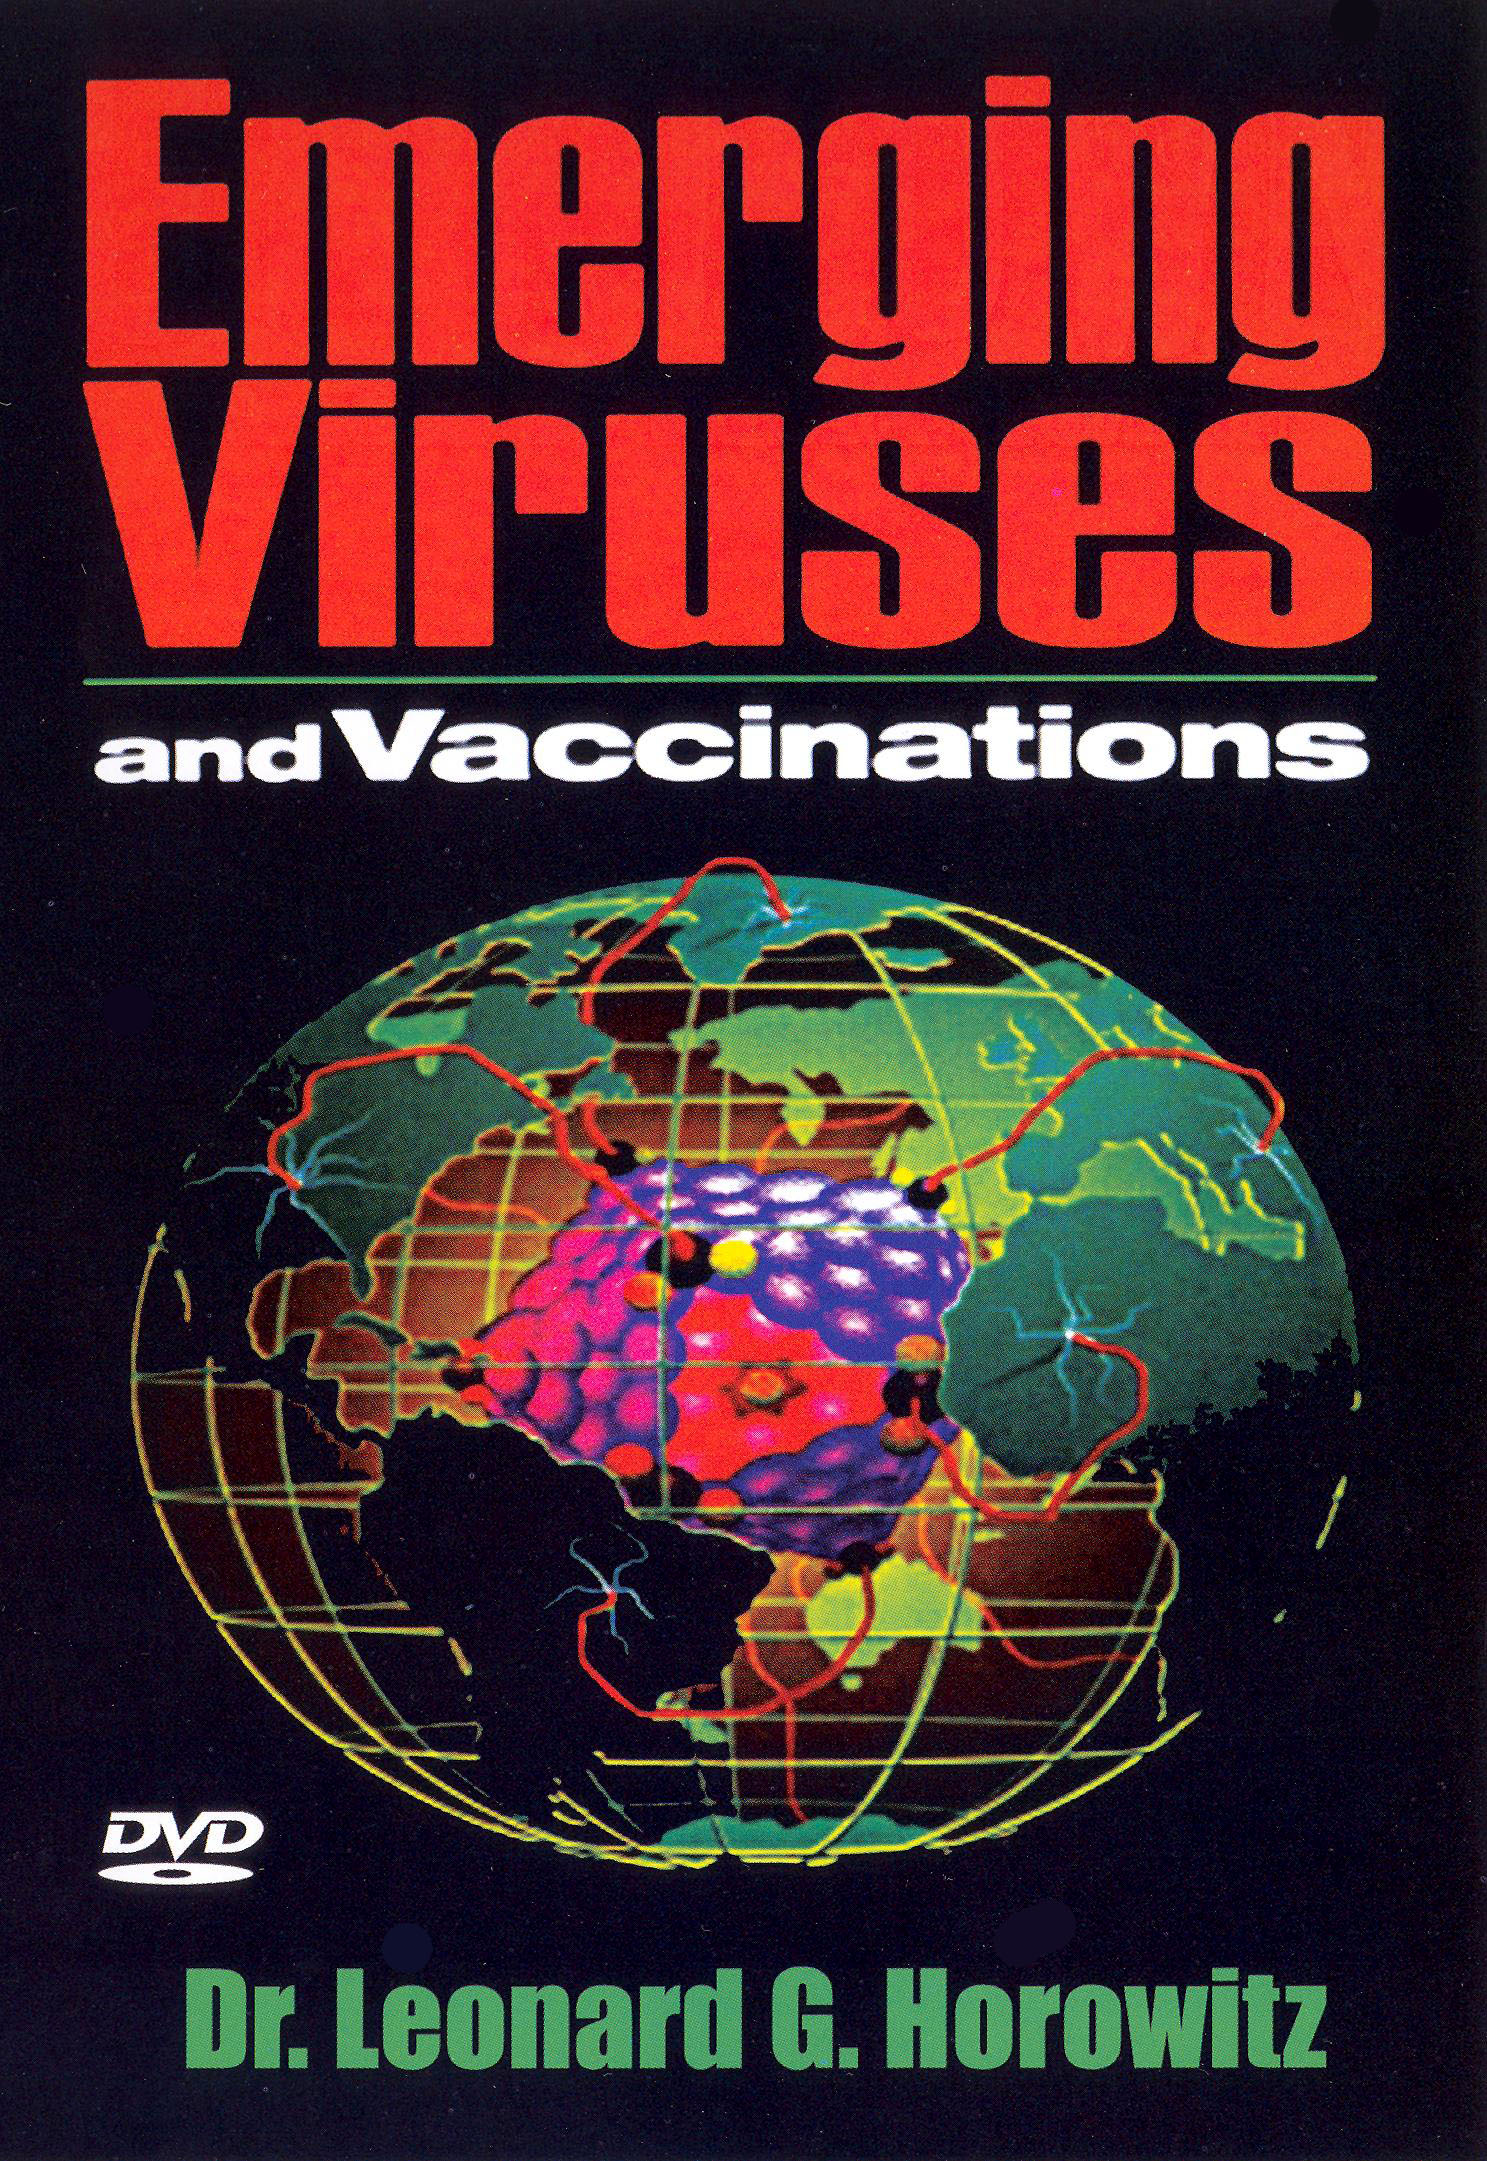 Emerging Viruses and Vaccinations - Dr. Leonard Horowitz